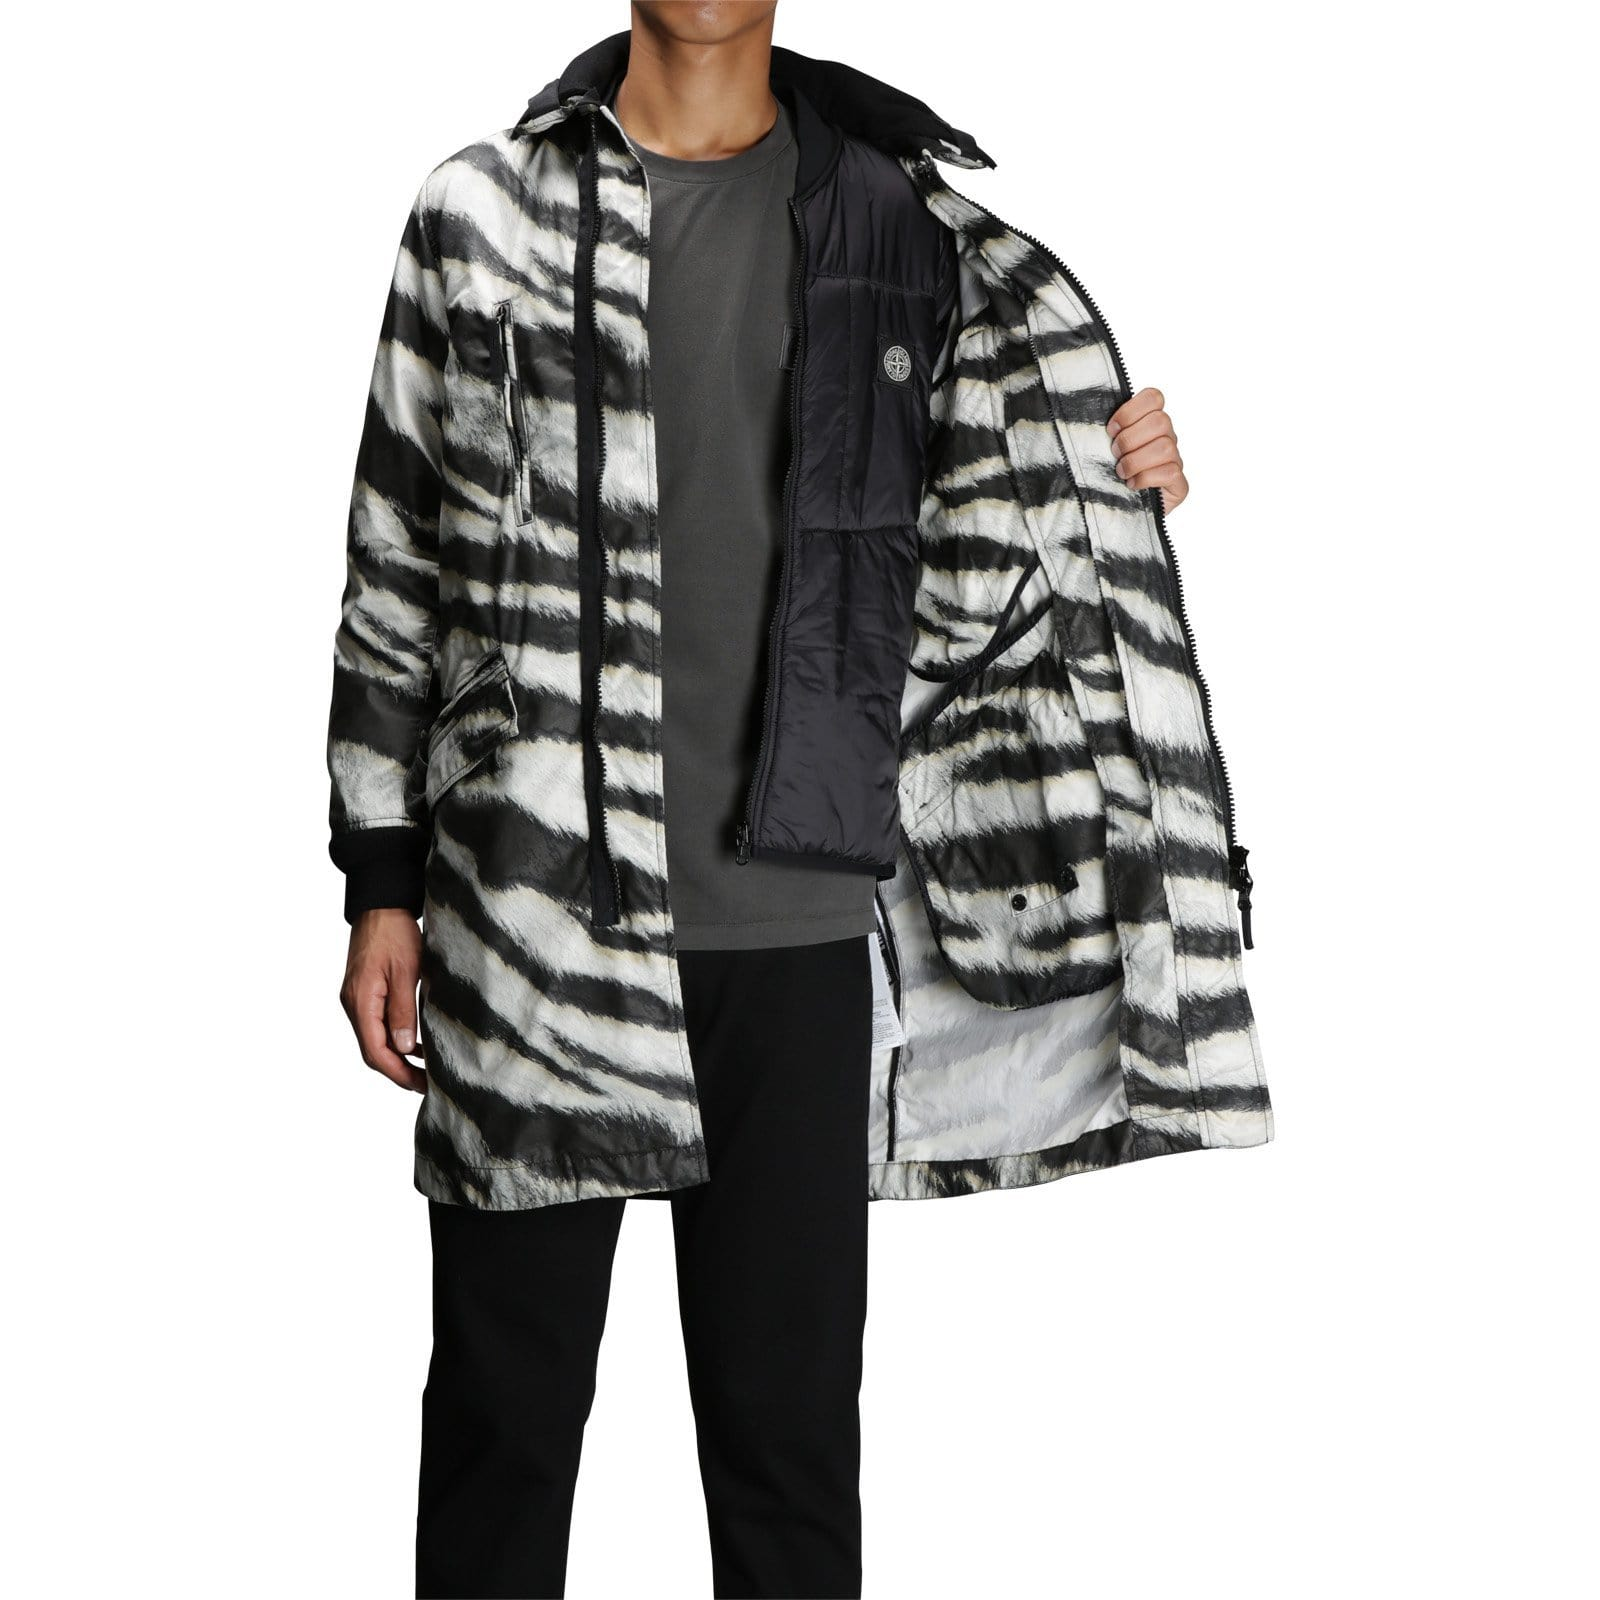 Stone Island COAT WITH DETACHABLE WAISTCOAT 6915711E1 White/Black